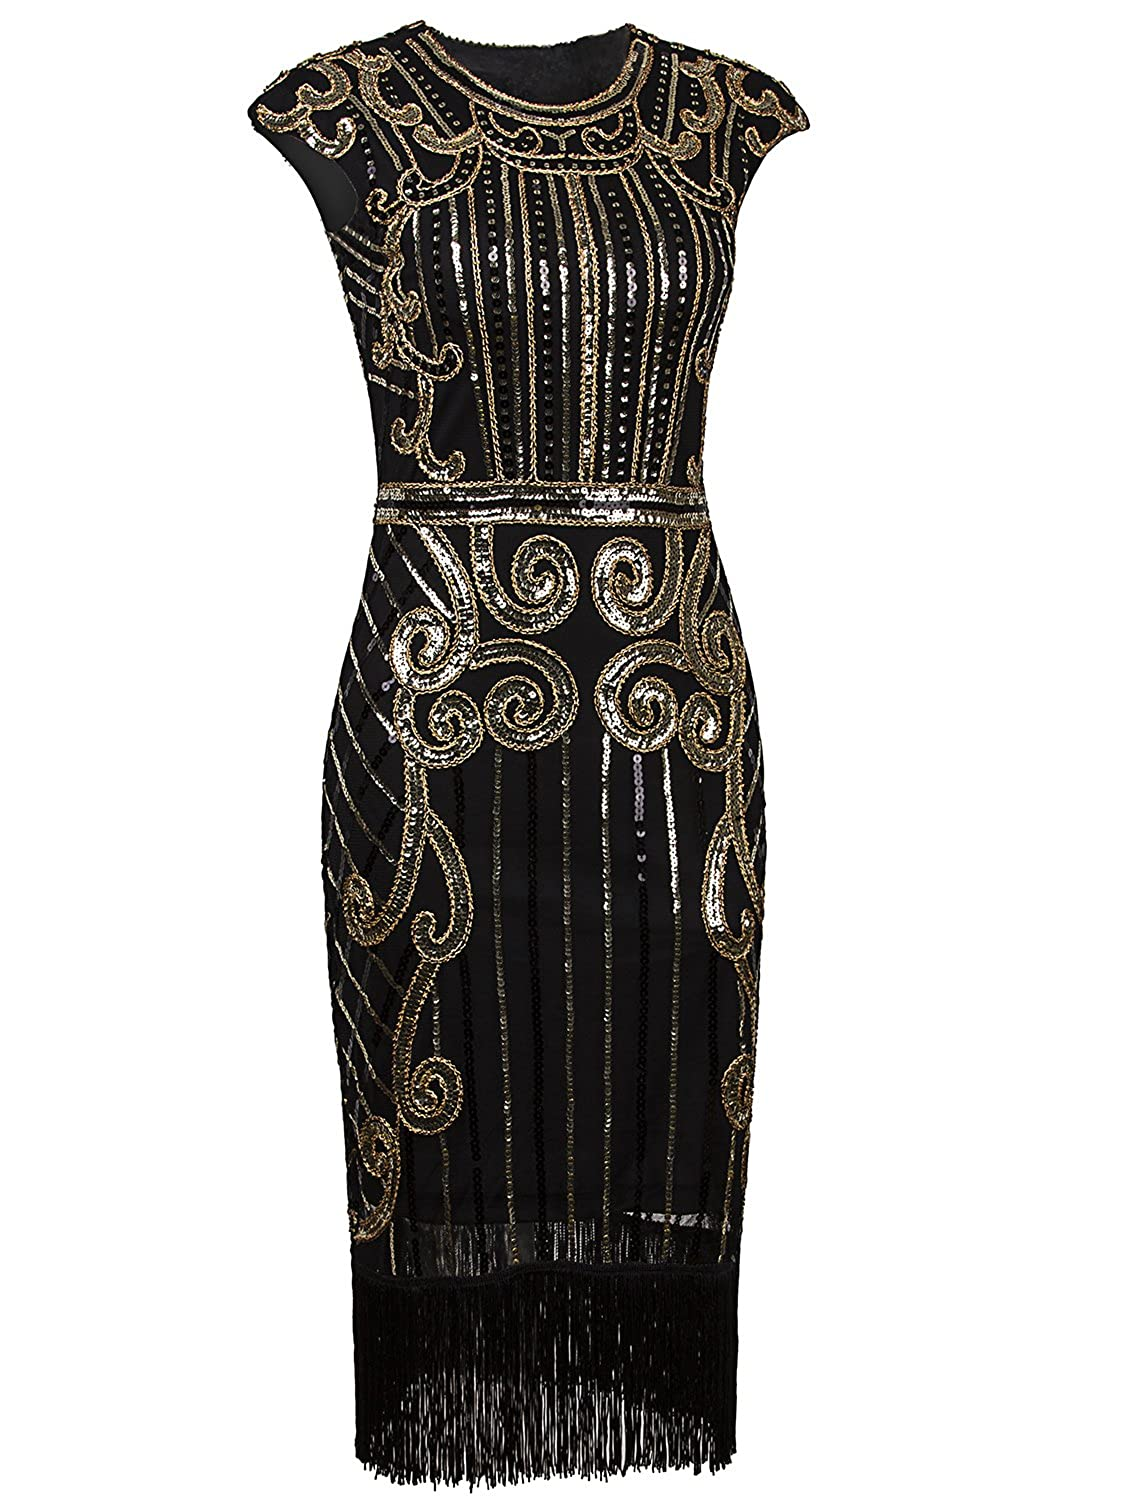 Roaring 20s Costumes- Flapper Costumes, Gangster Costumes Vijiv 1920s Vintage Inspired Sequin Embellished Fringe Long Gatsby Flapper Dress $33.99 AT vintagedancer.com